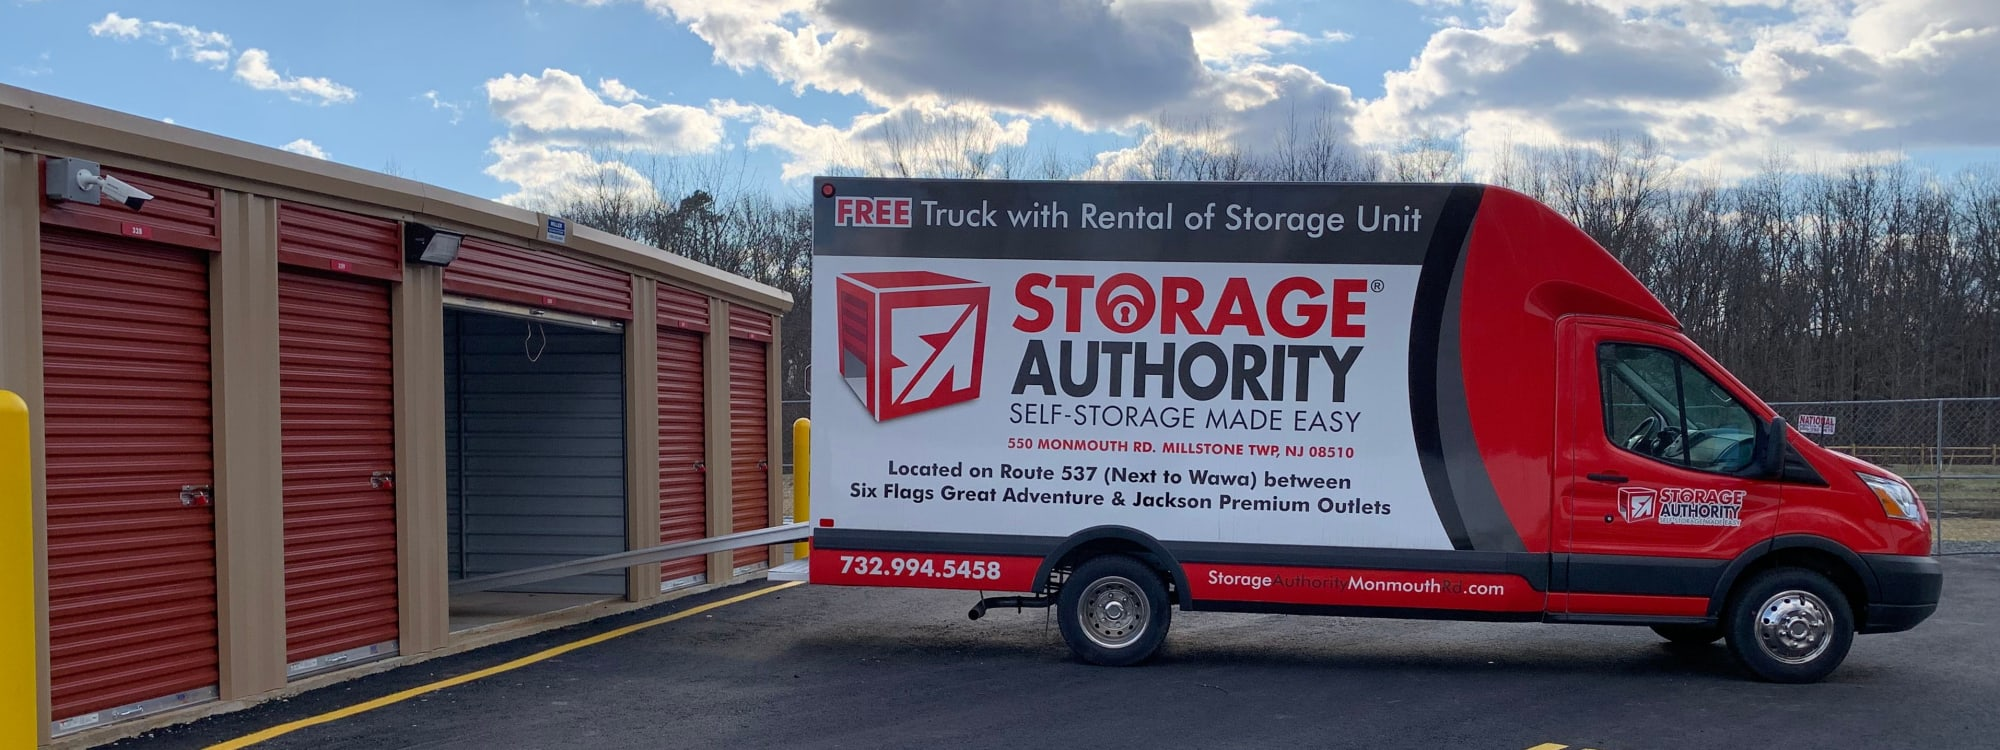 Moving truck at Storage Authority Monmouth Rd in Millstone Township, New Jersey.